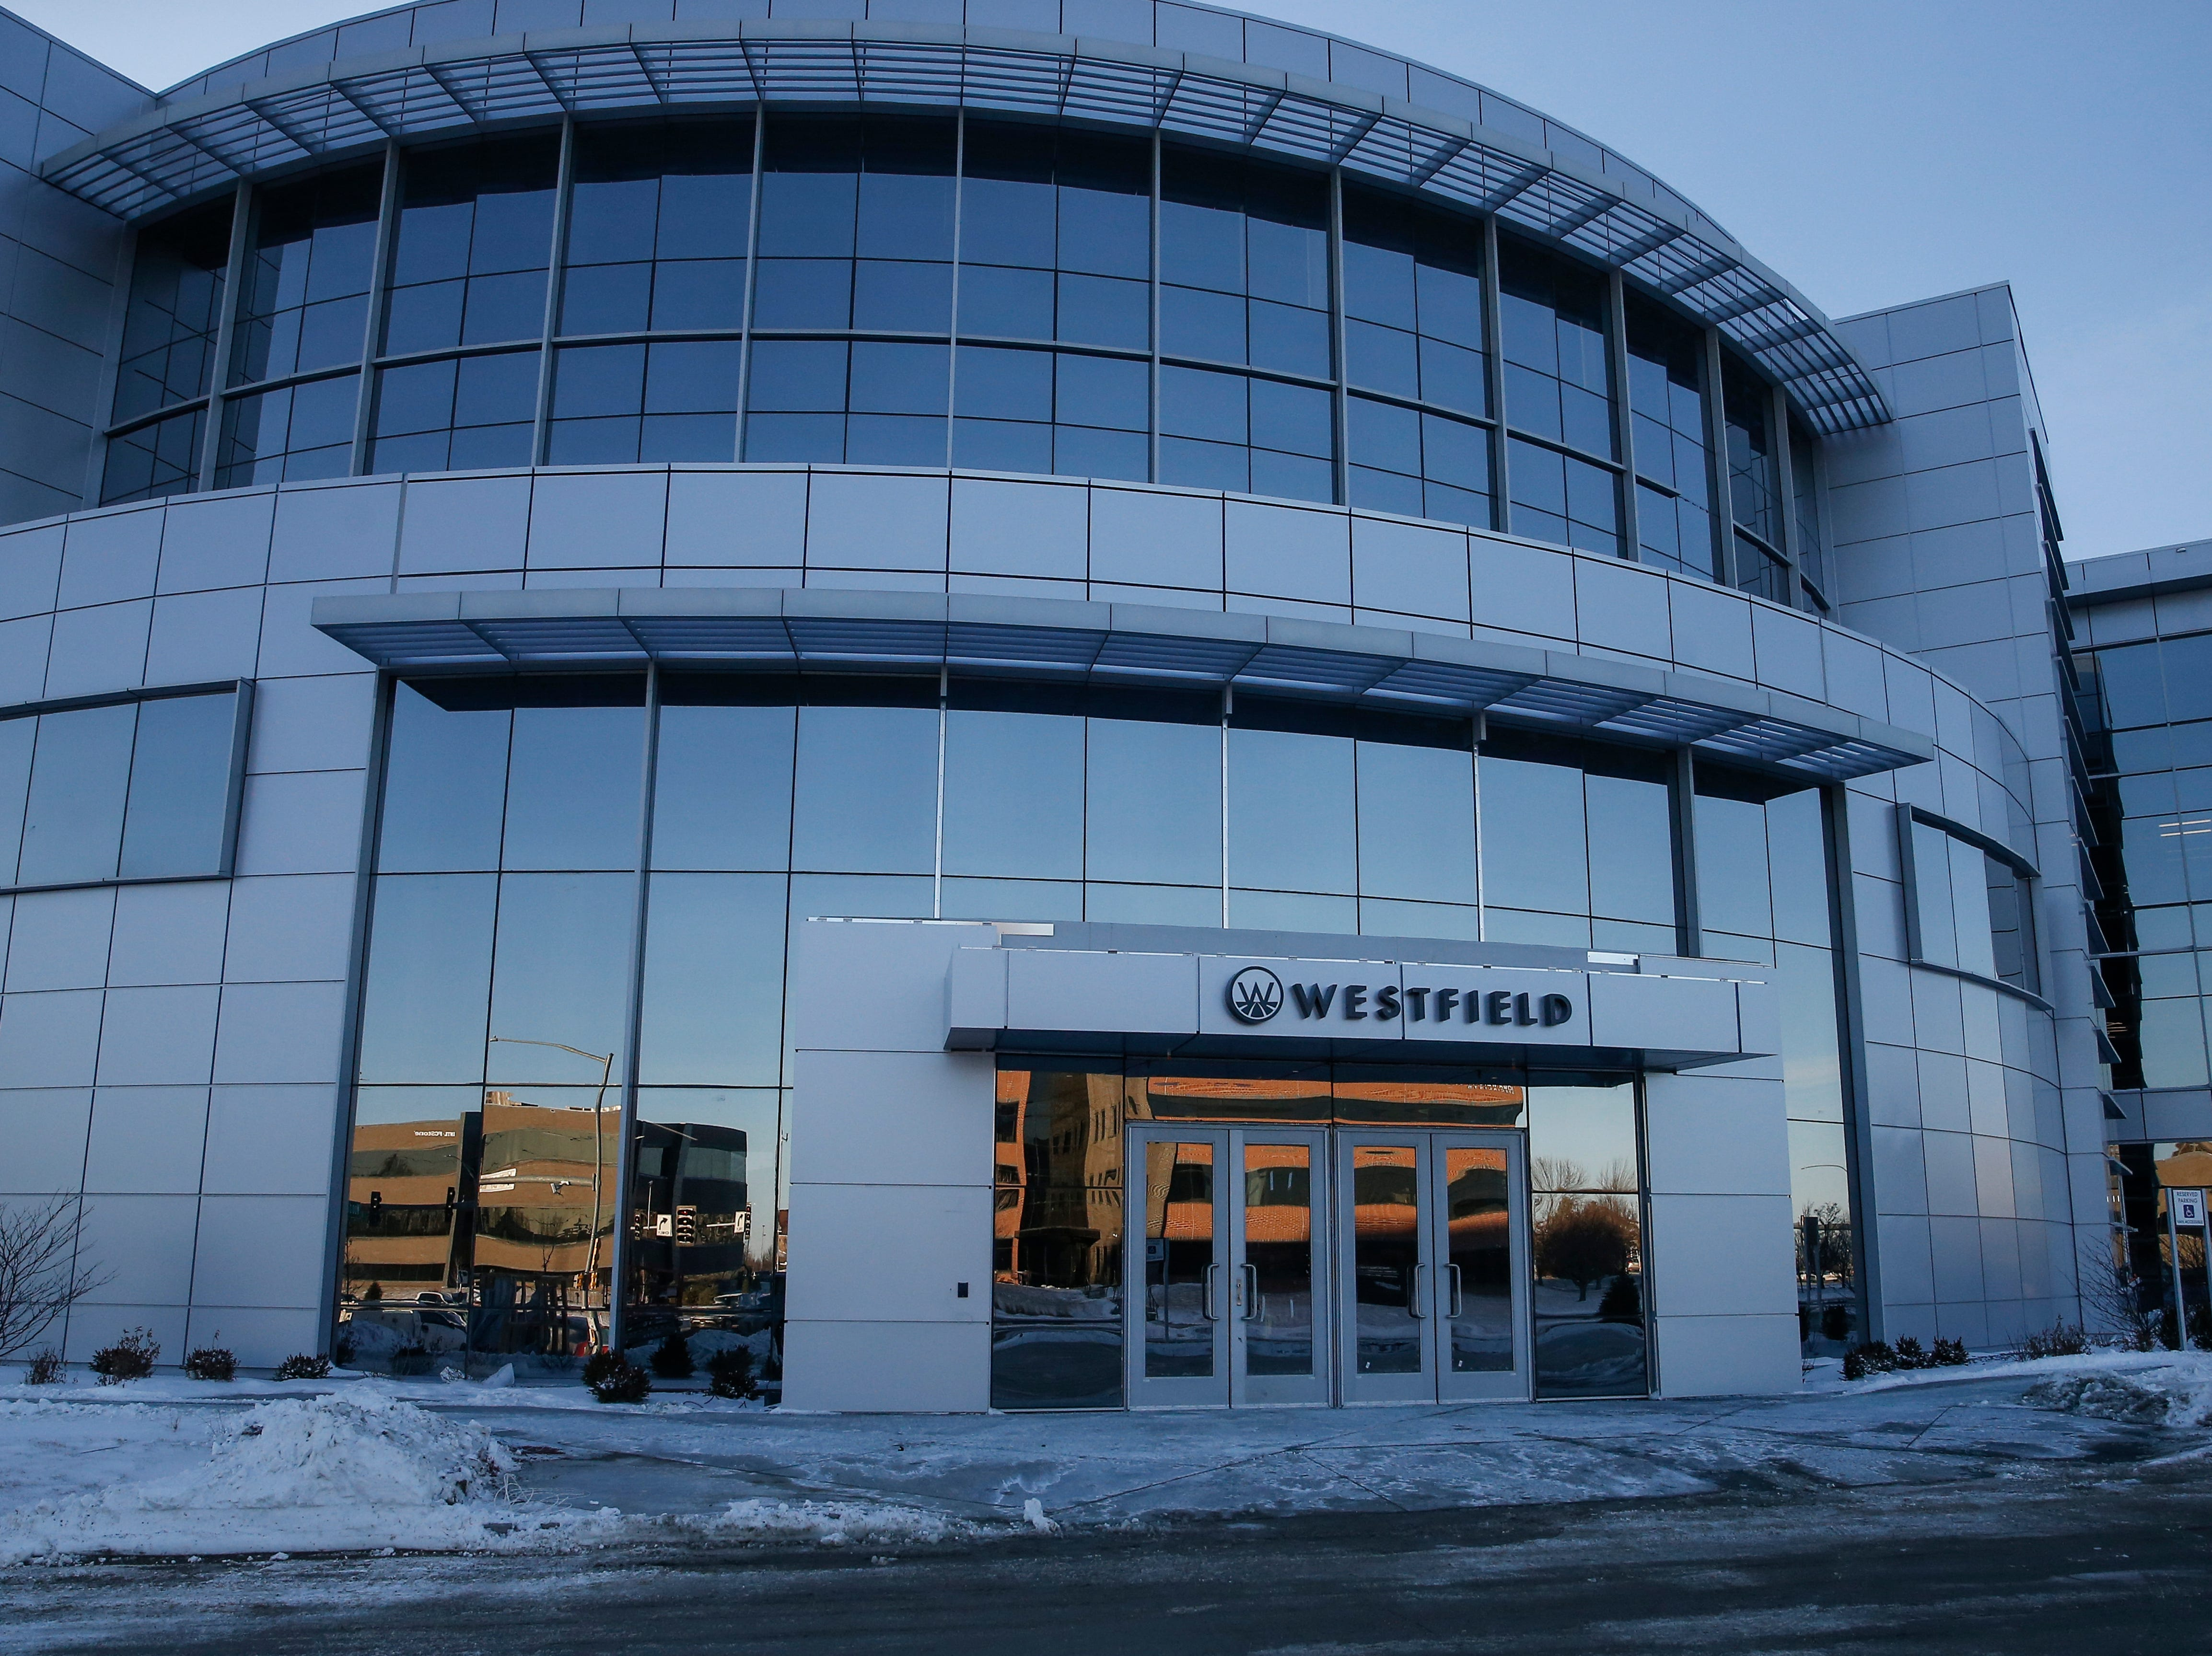 Iowa's newest Medicaid provider moving into one of central Iowa's priciest new office developments